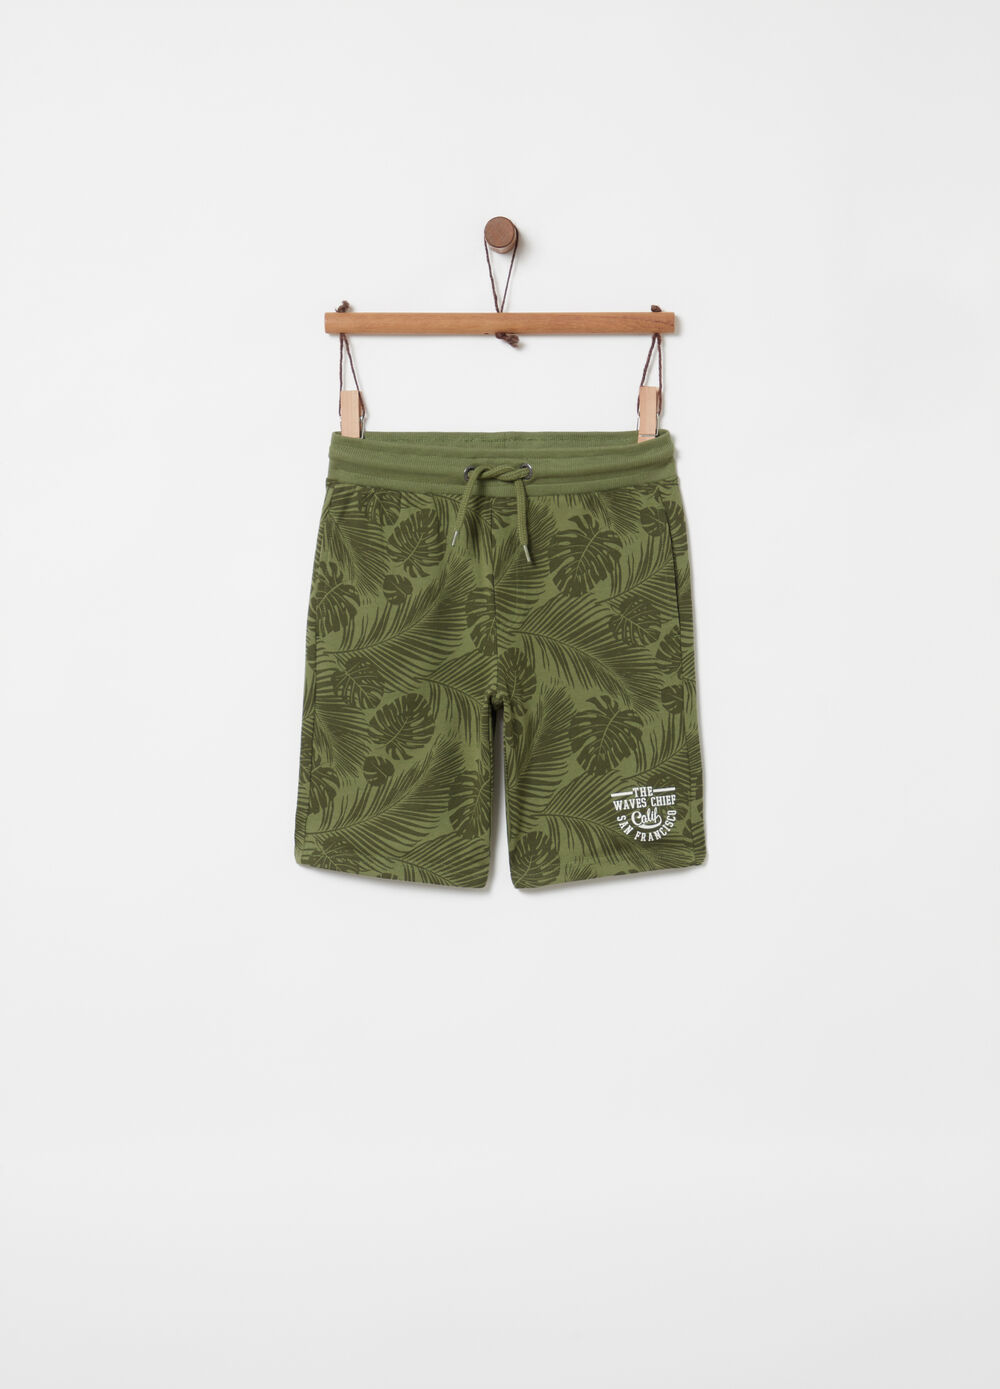 100% cotton floral shorts with pockets